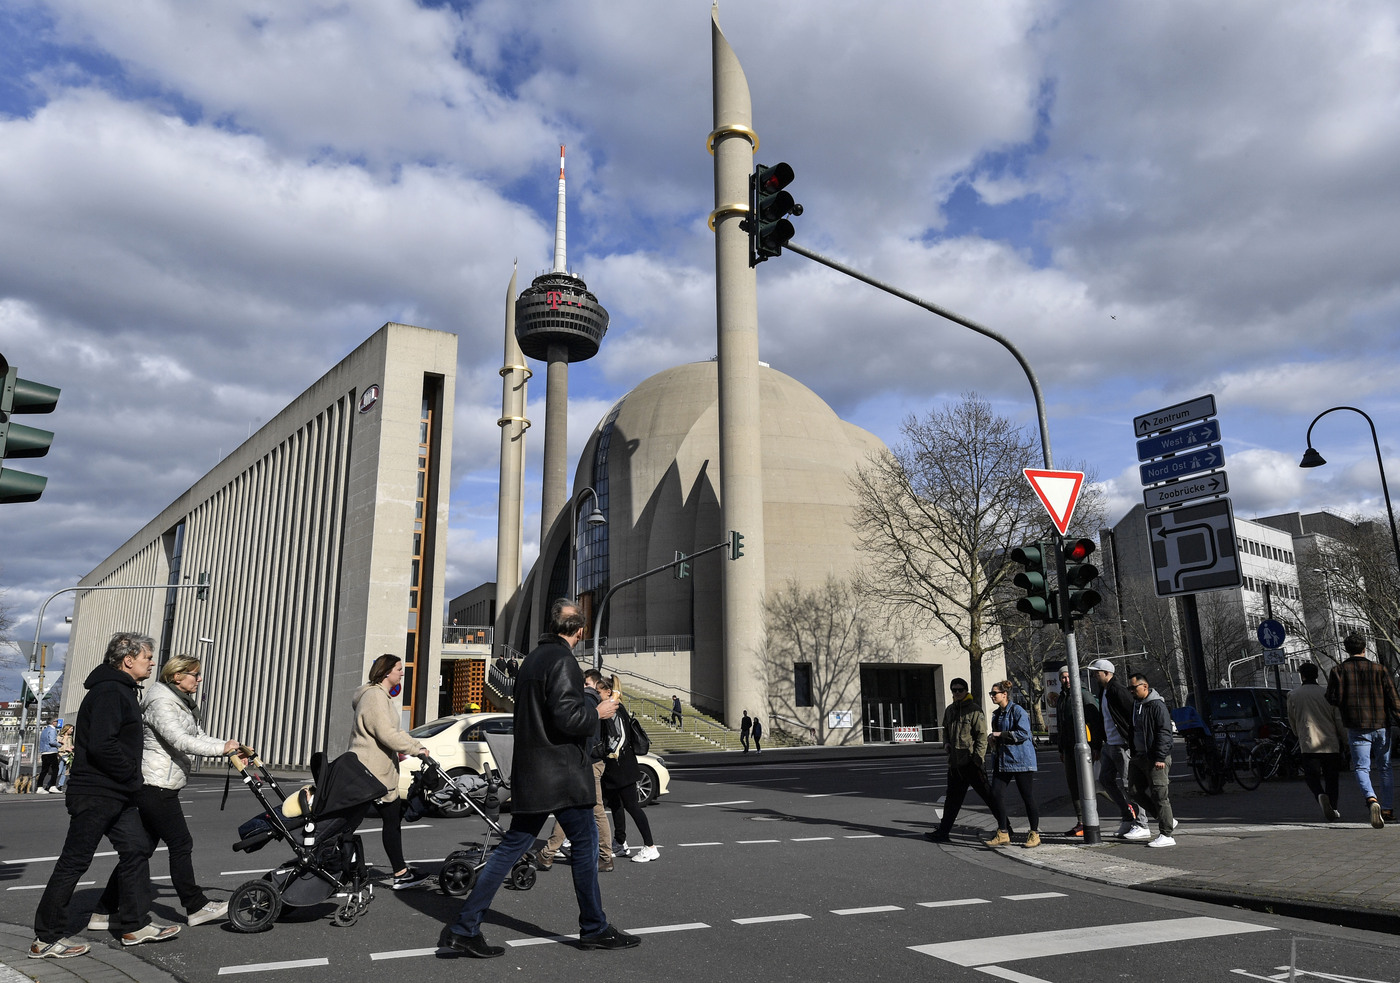 L'islam in Germania all'ombra dei muezzini e dei minareti